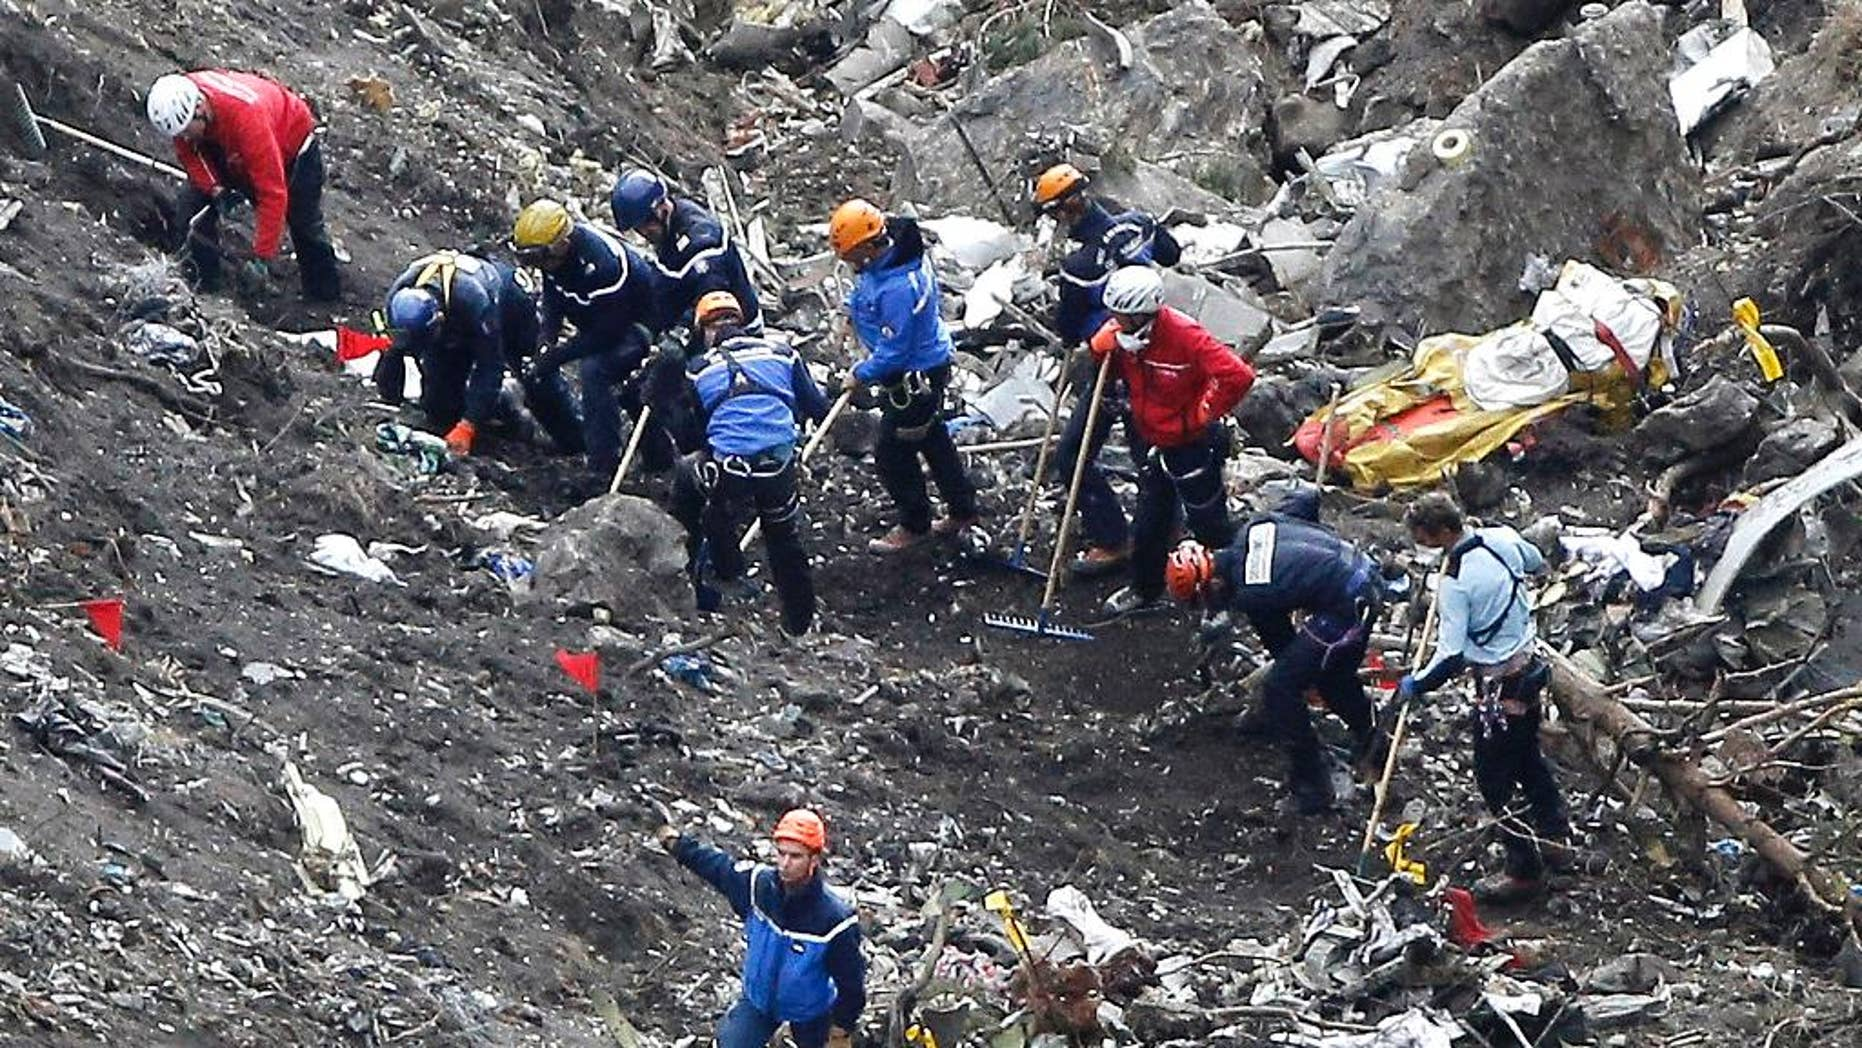 FILE - In this Thursday March 26, 2015 file photo, rescue workers inspect the debris from the Germanwings jet at the crash site near Seyne-les-Alpes, France. The somber mission to recover the remains of 150 people killed instantly when the Germanwings flight crashed full speed into the Col de Mariaud is not a quiet one and crucial physical evidence for the crash investigation can be gathered only when the mountains cooperate. (AP Photo/Laurent Cipriani, File)